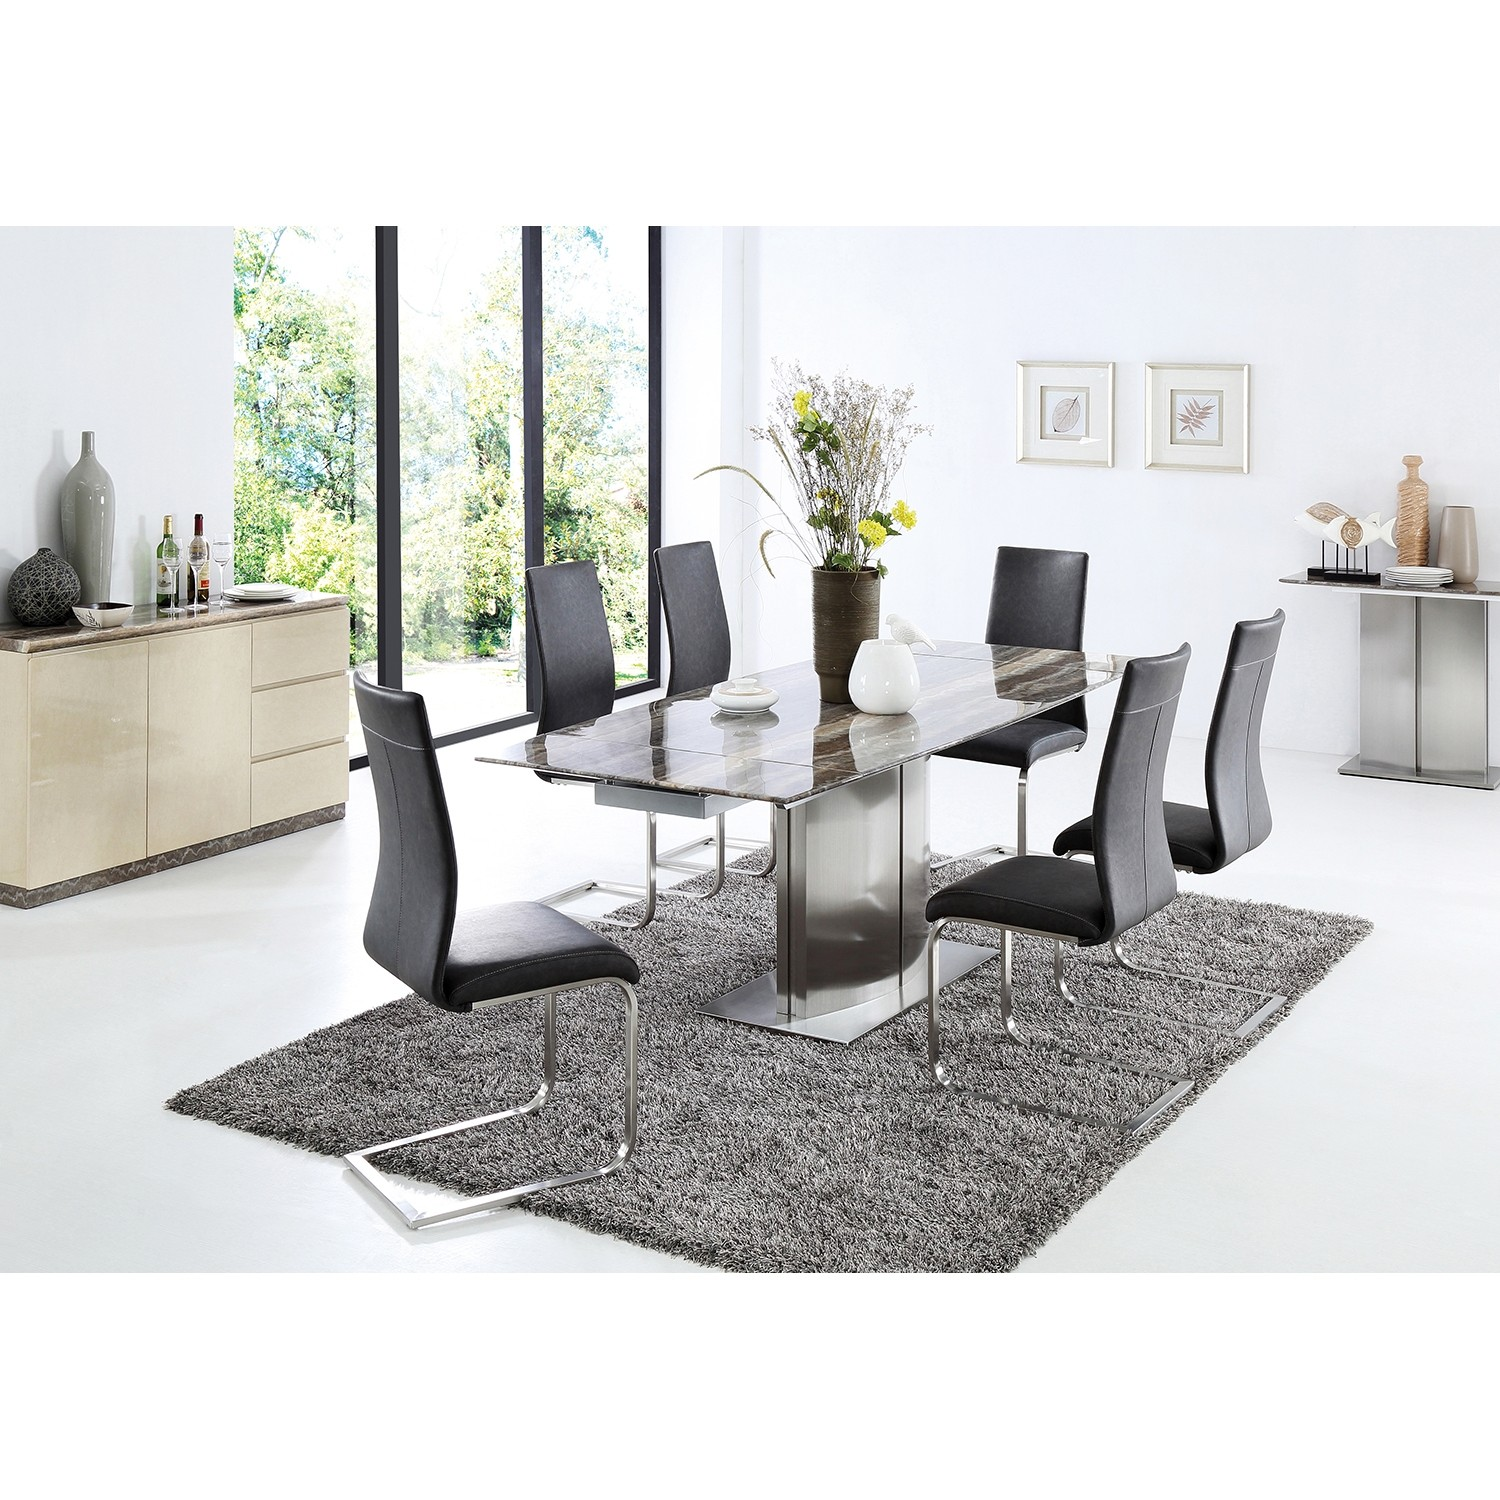 Casa Wave Dining Table 6 Chairs, A Dining Room Table With 6 Chairs